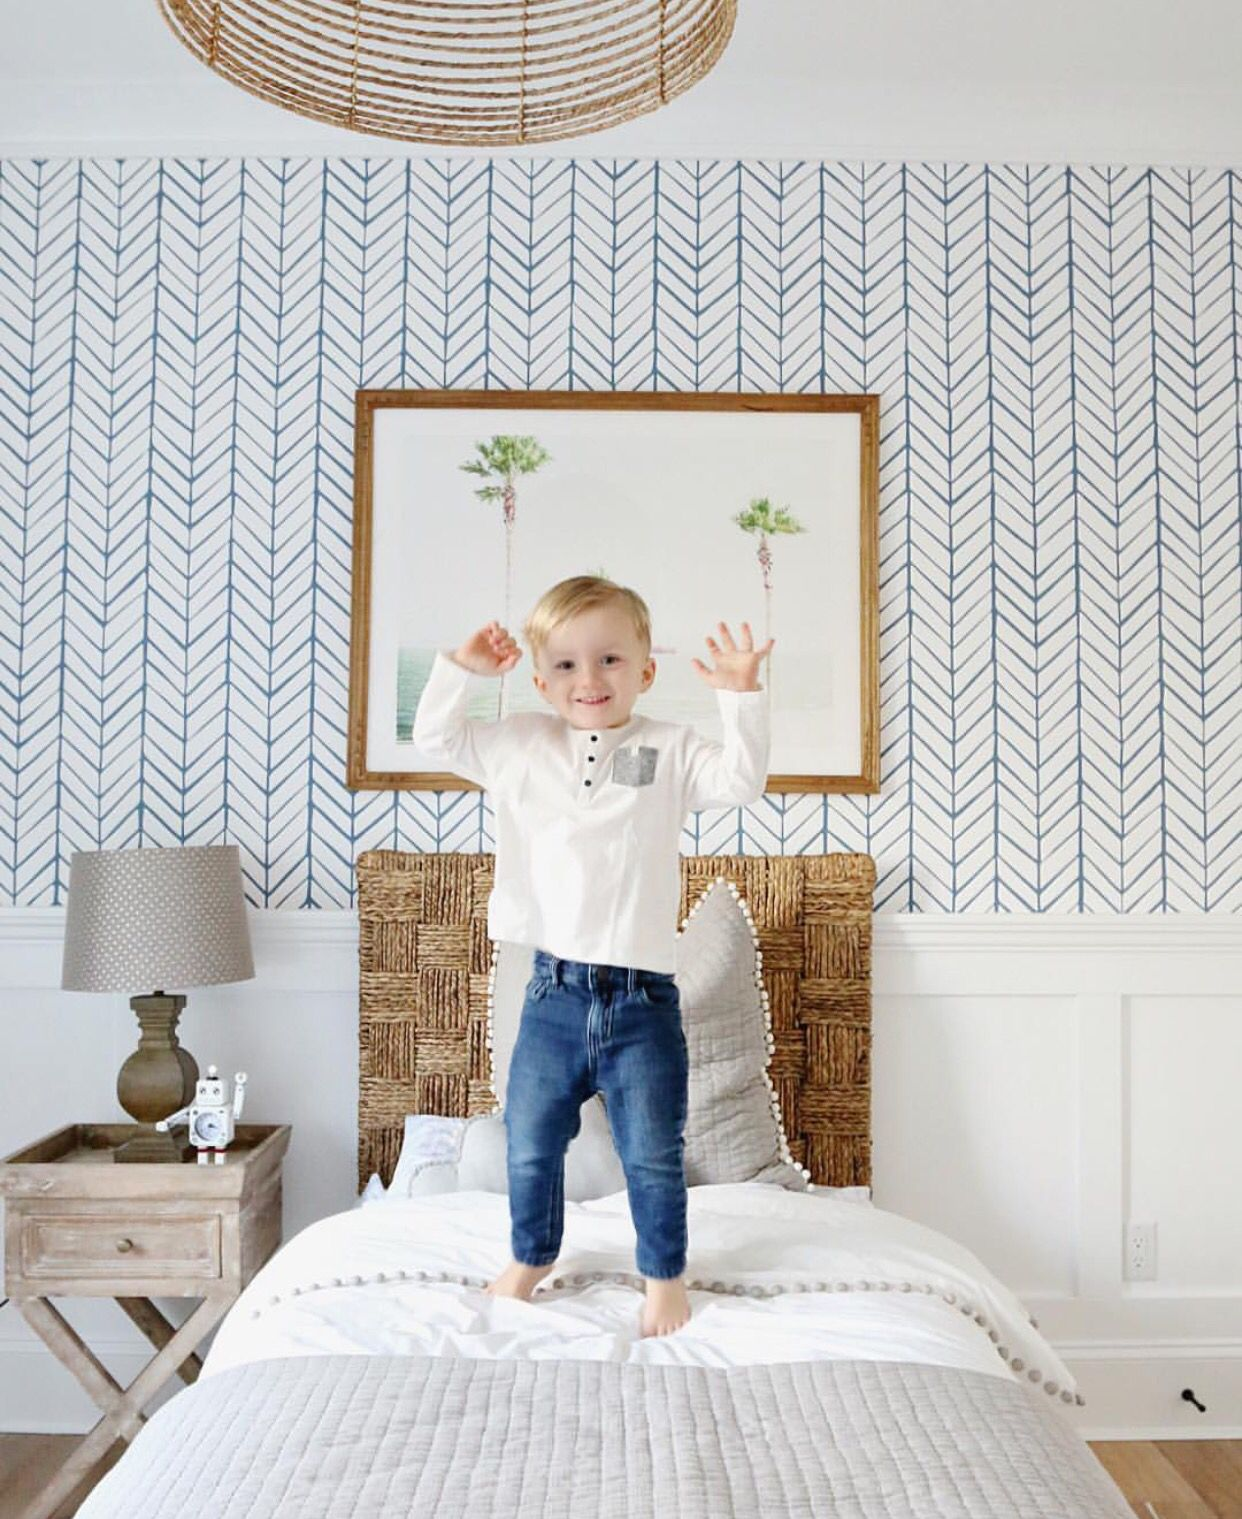 Decor Like A Pro Children Room Decoration Ideas Tips Boy Bedroom Design Room Wallpaper Kid Room Decor